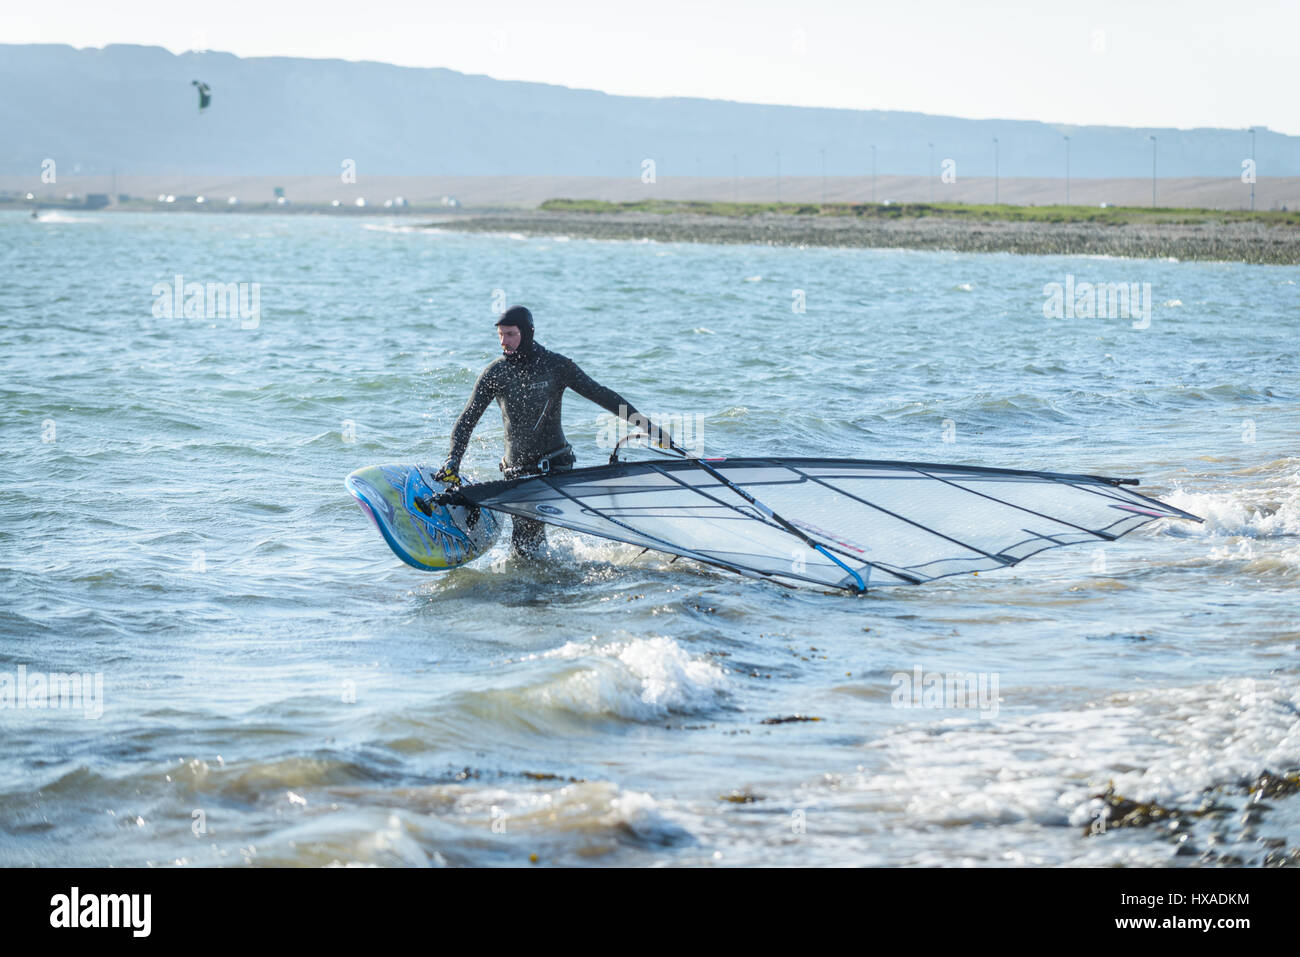 Portland Harbour, Dorset, UK. 26th March 2017. A man preparing his wind surfing board on a crisp windy sunny day - Stock Image